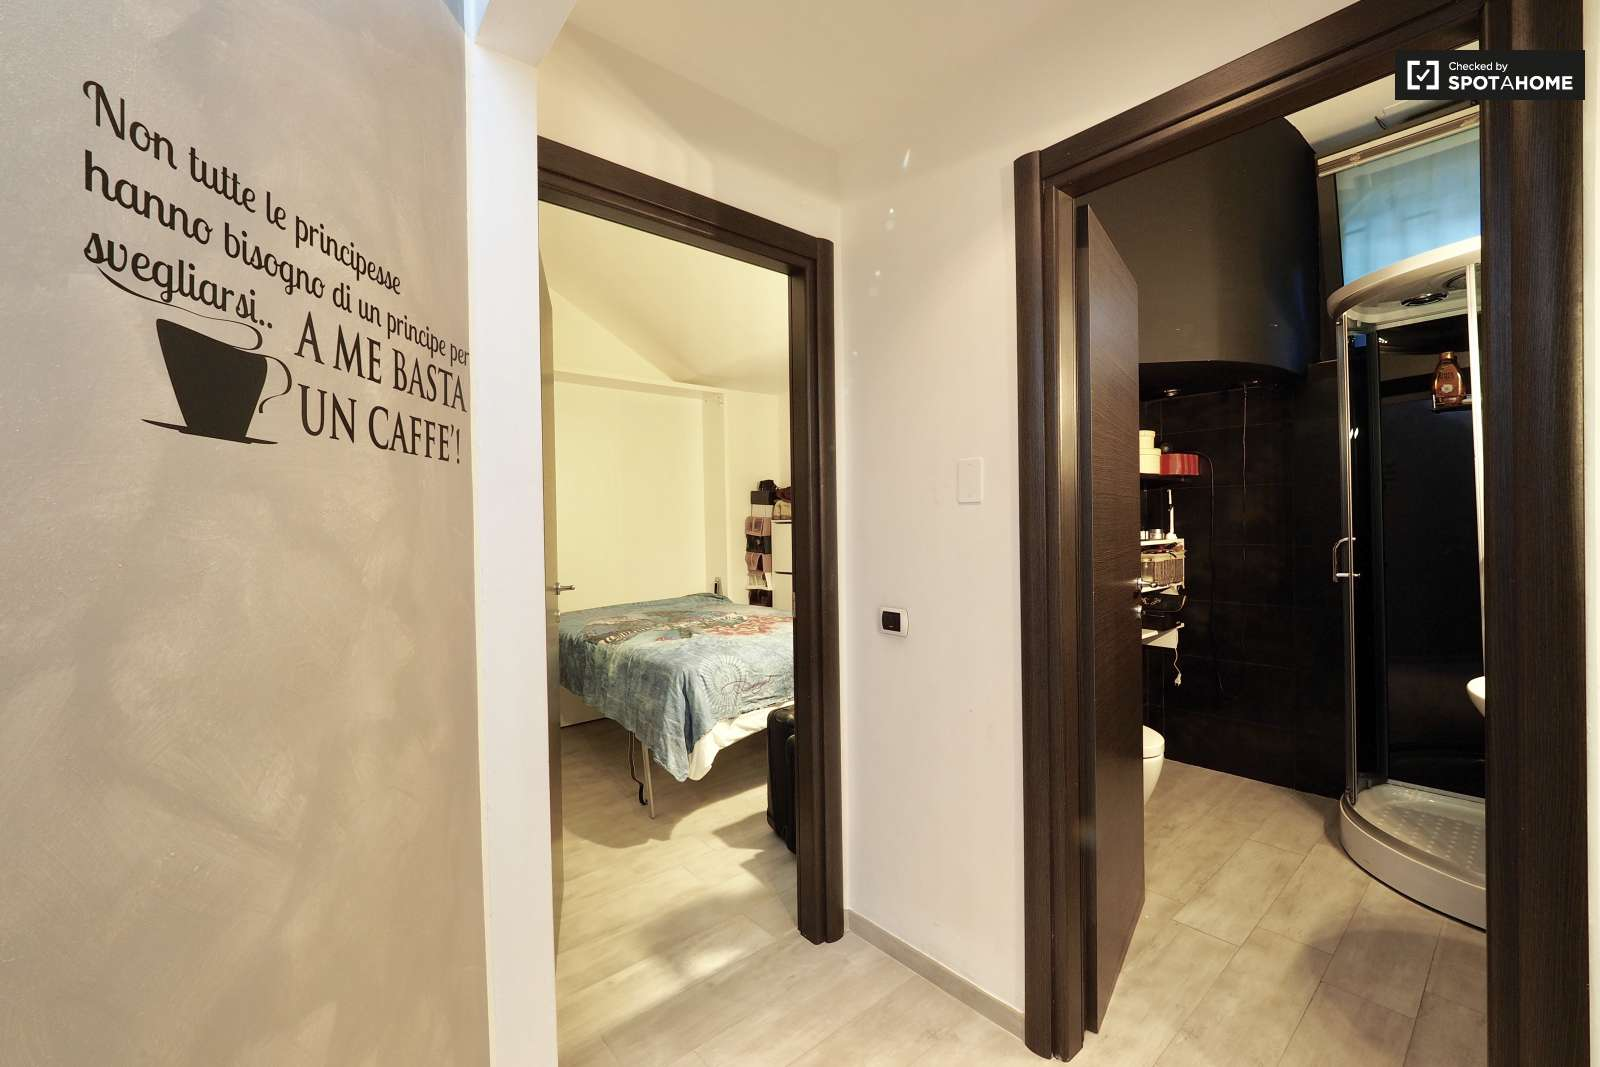 Basement Apartment Entrance. Trendy 2 bedroom basement apartment for rent in Turro  Milan ref